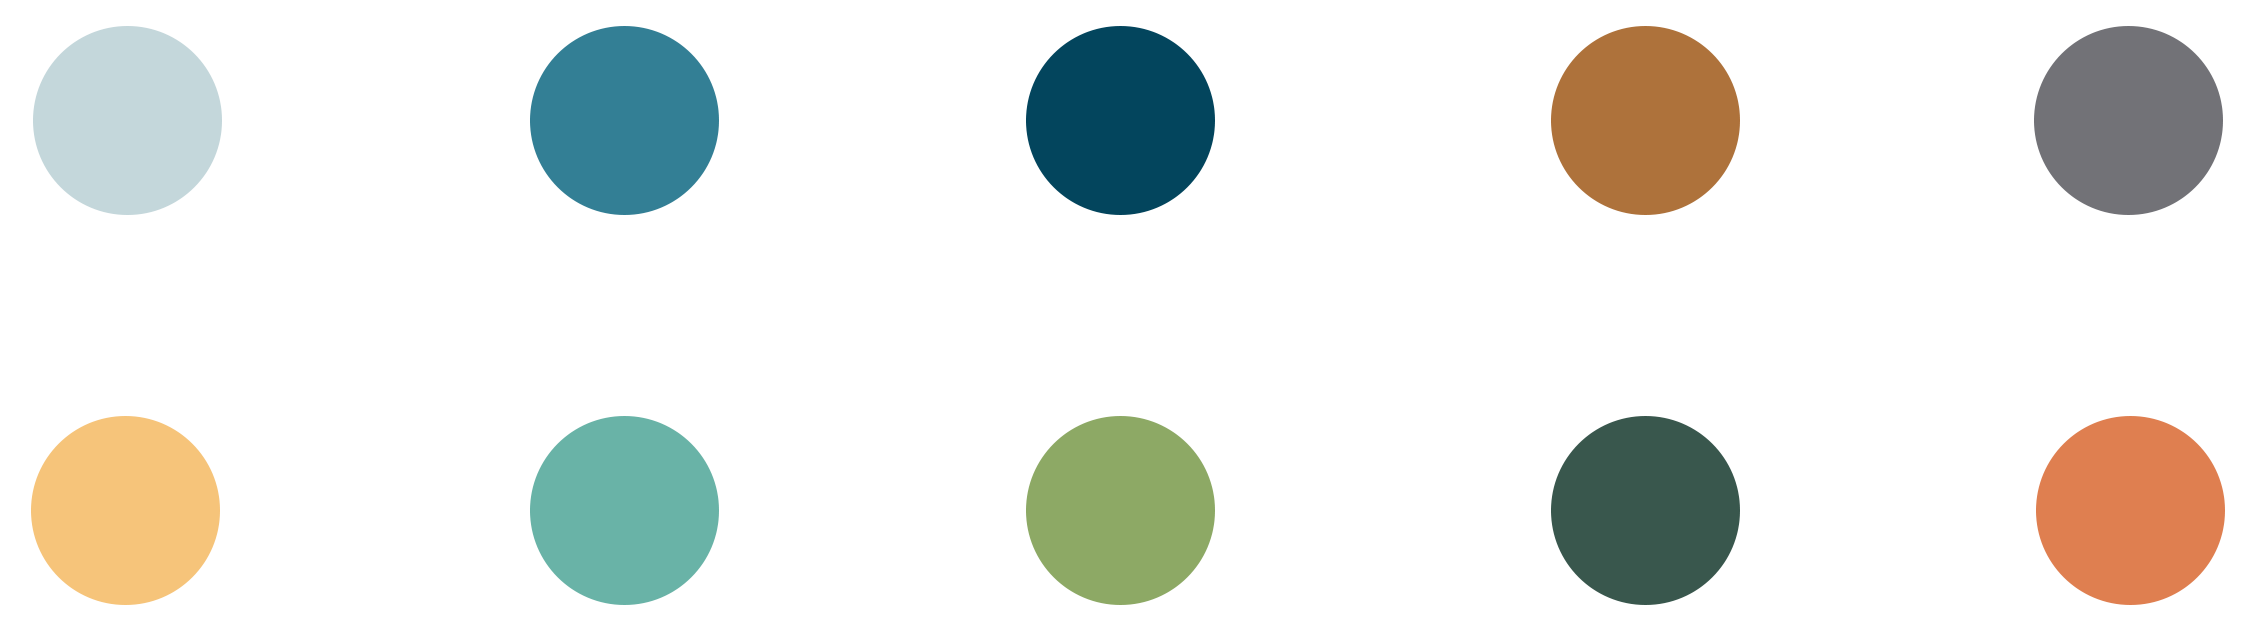 secondary-colors.png